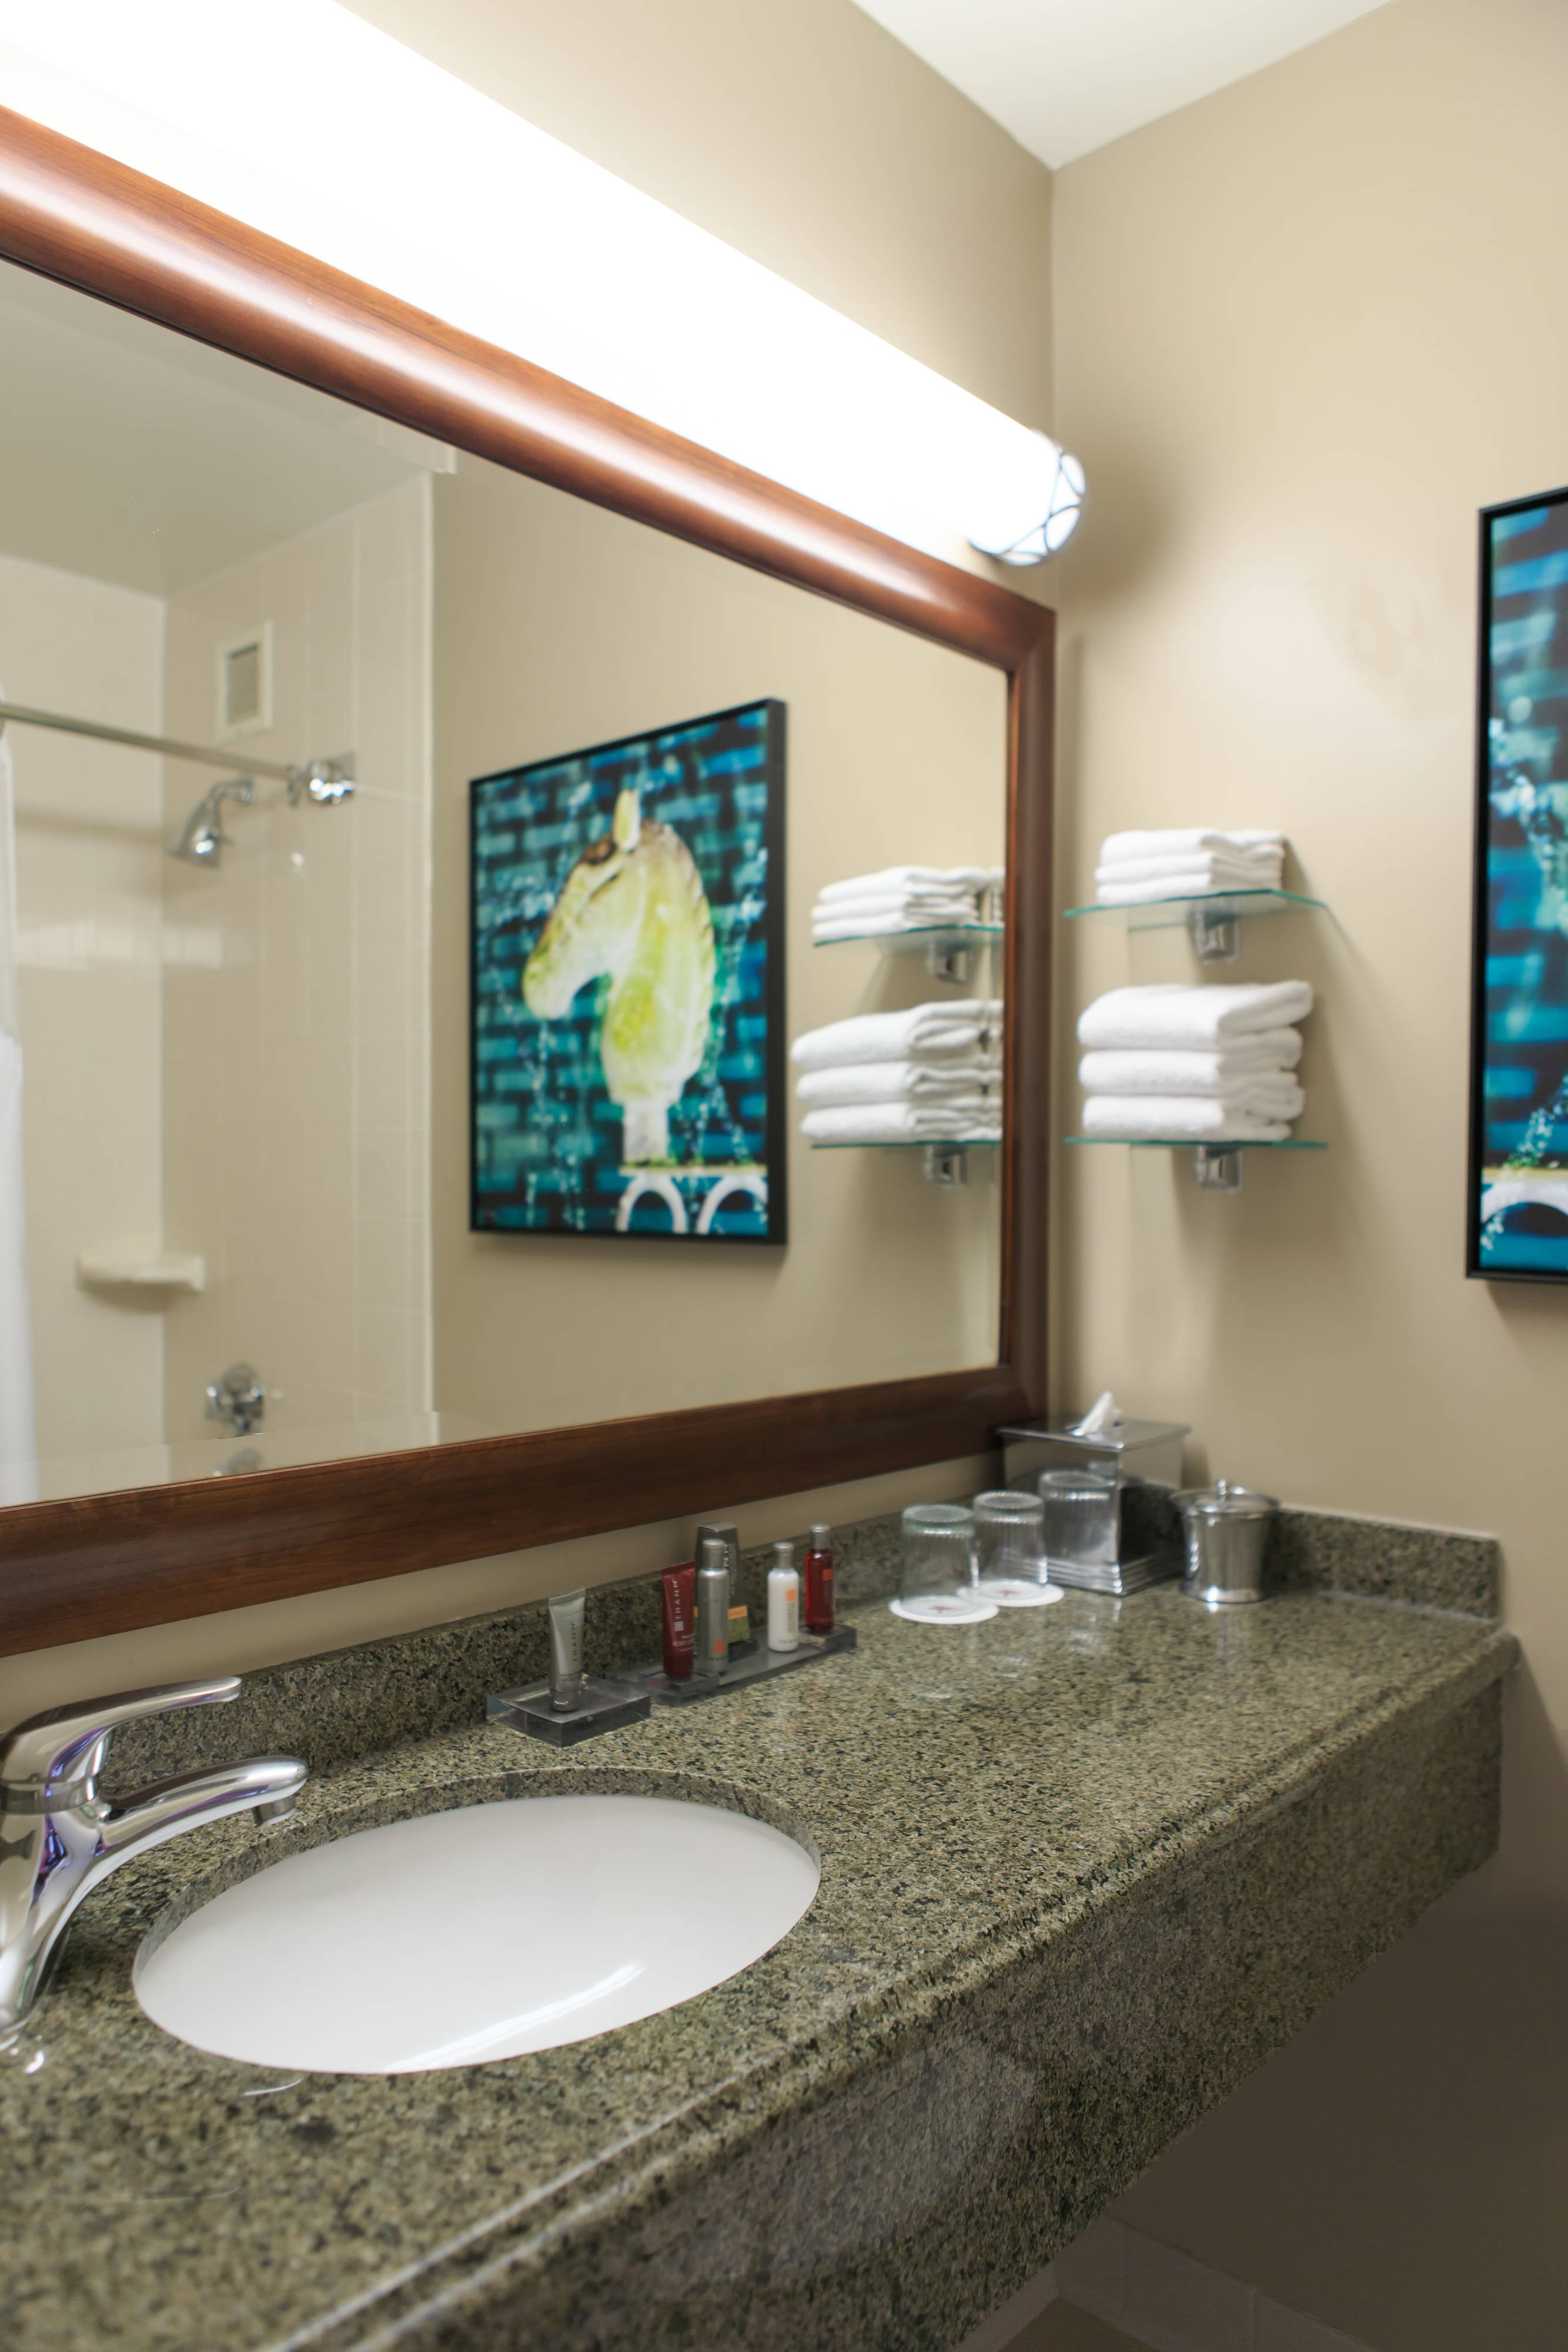 Baño de la suite Center Tower